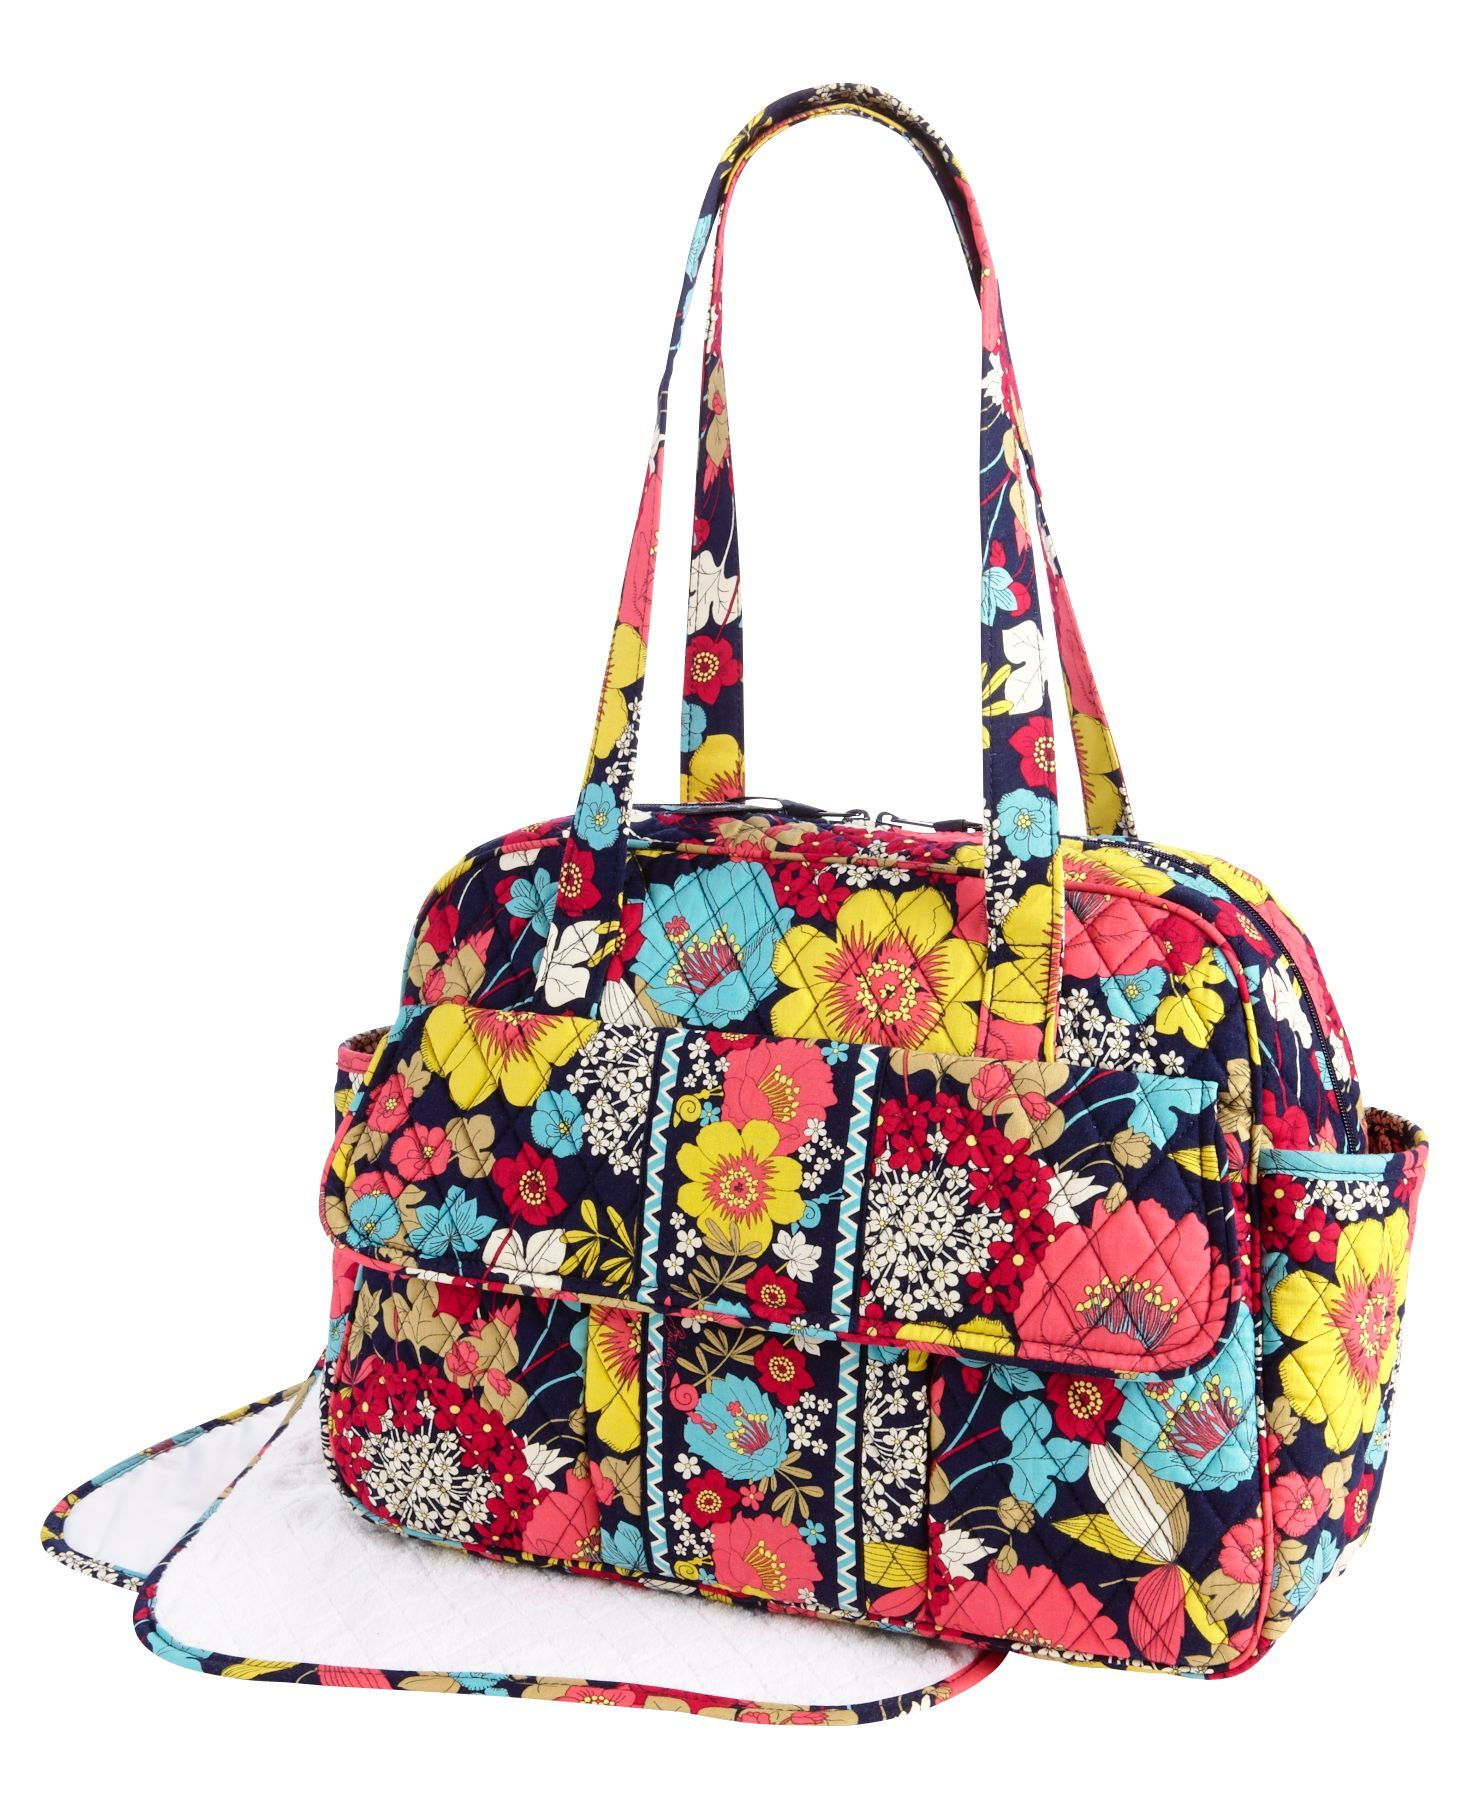 Vera Bradley Baby Bag in Happy Snails 986e7a04d1609